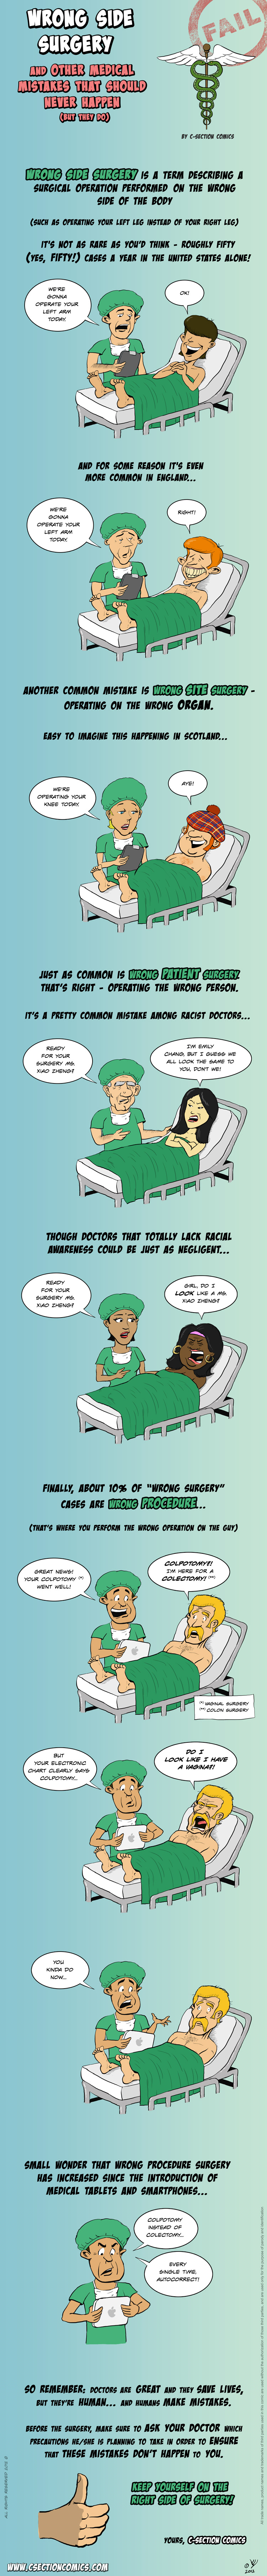 Wrong Side Surgery and Other Medical Mistakes by C-Section Comics